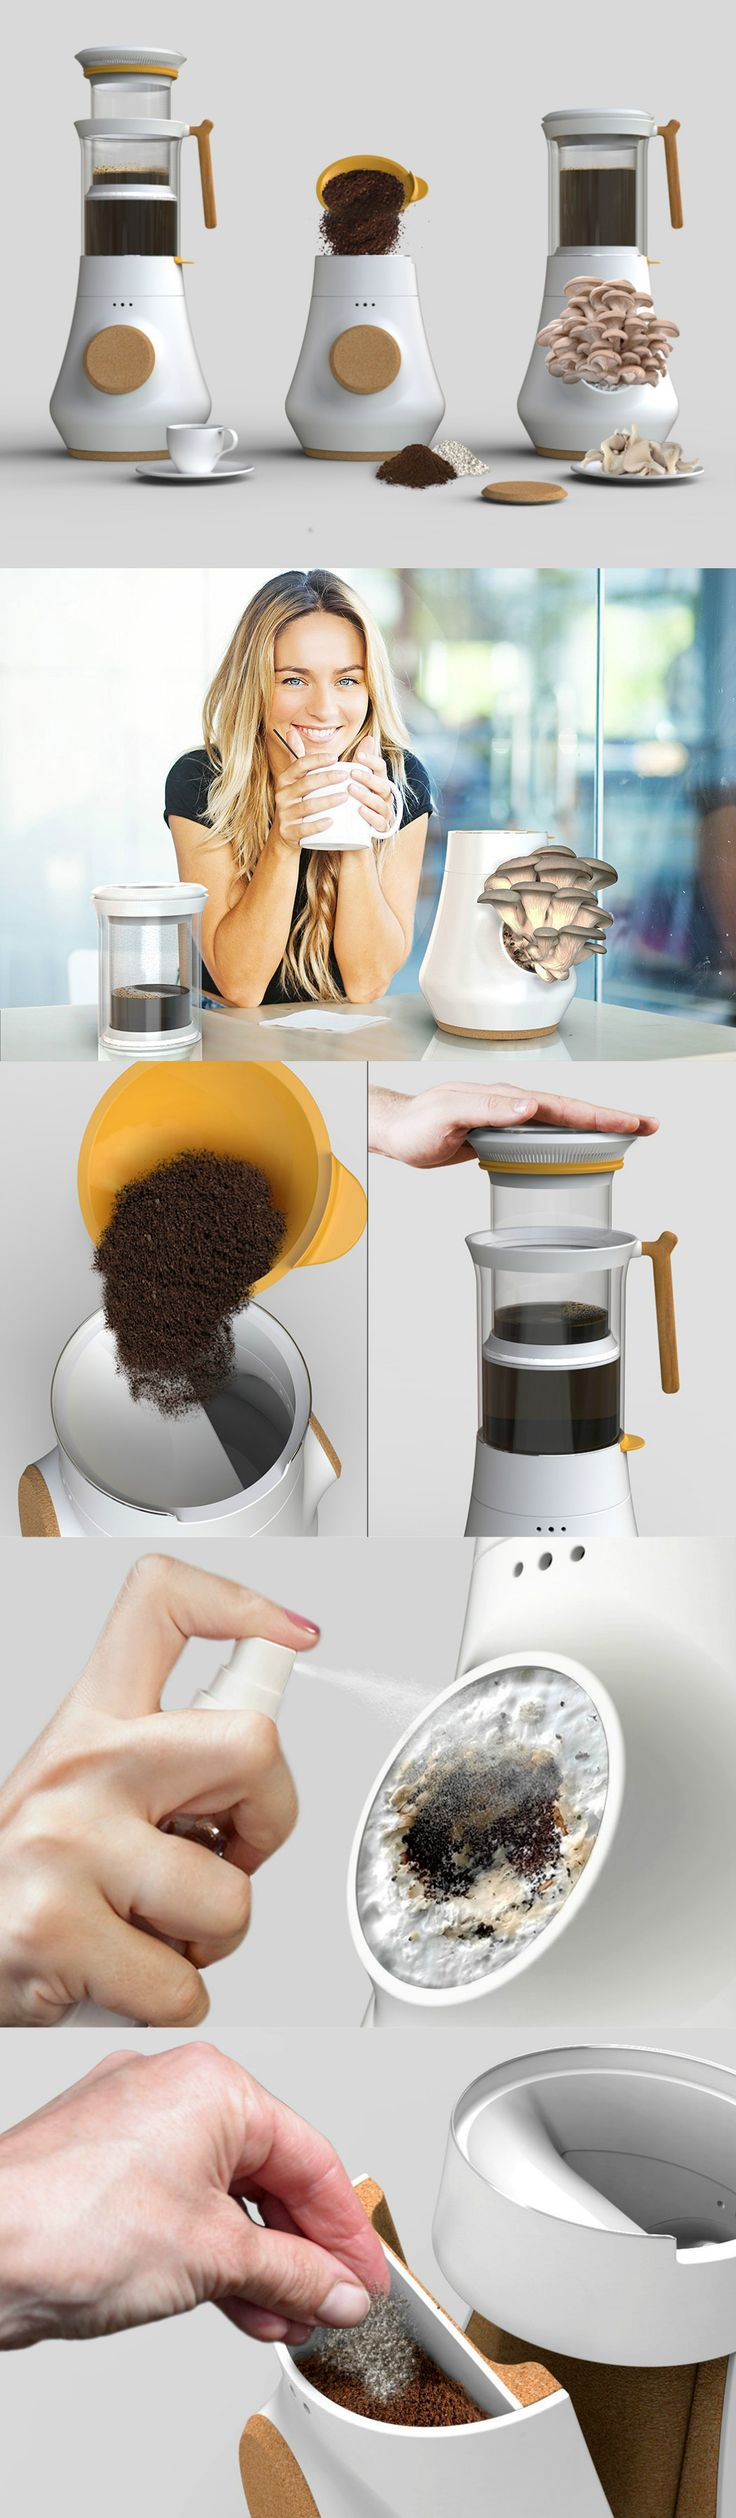 A NEW COFFEE ECOSYSTEM | READ FULL STORY AT YANKO DESIGN